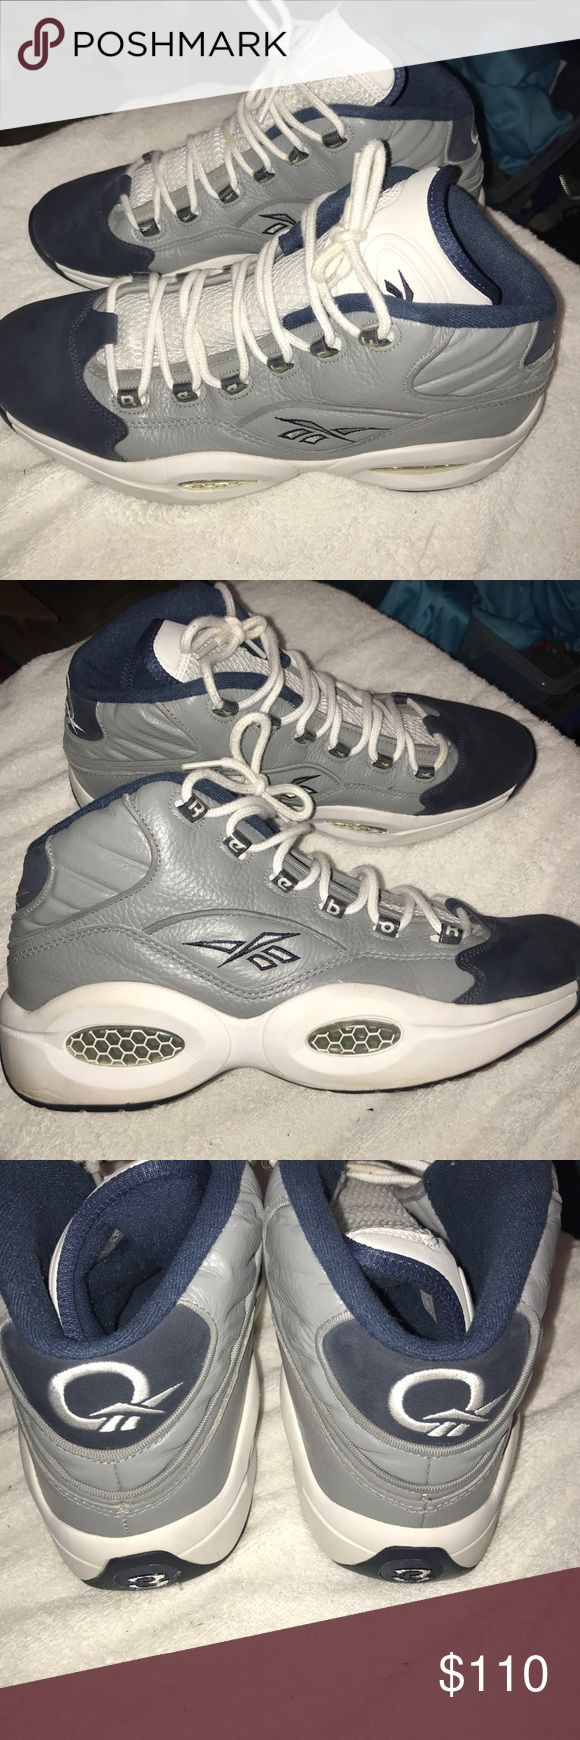 Reebok Answer Georgetowns Allen Iverson's signature Reebok Answer shoe in the Georgetown colorway. Men's size 12. Really good condition. No major flaws, very light use. Any questions feel free to ask. Reebok Shoes Sneakers